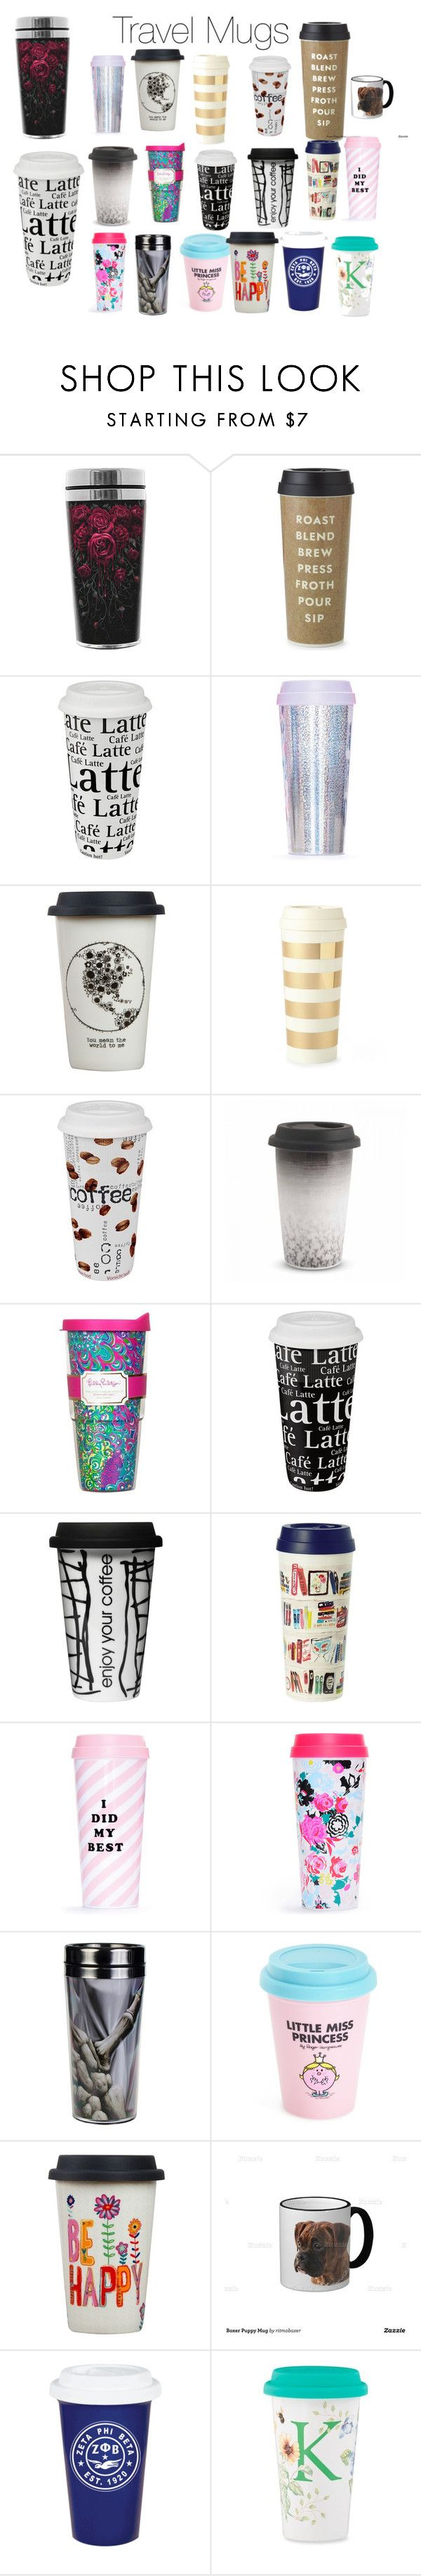 """Travel mugs love them and there is one mug only it was meant to be travel mug but it was adorable so I had to but it on there cause it was cute xxoxxoxxo "" by leahfrancesbest ❤ liked on Polyvore featuring beauty, Kate Spade, Könitz, ban.do, Natural Life, Wedgwood, Lilly Pulitzer, Dot & Bo, Wild & Wolf and Beta Fashion"